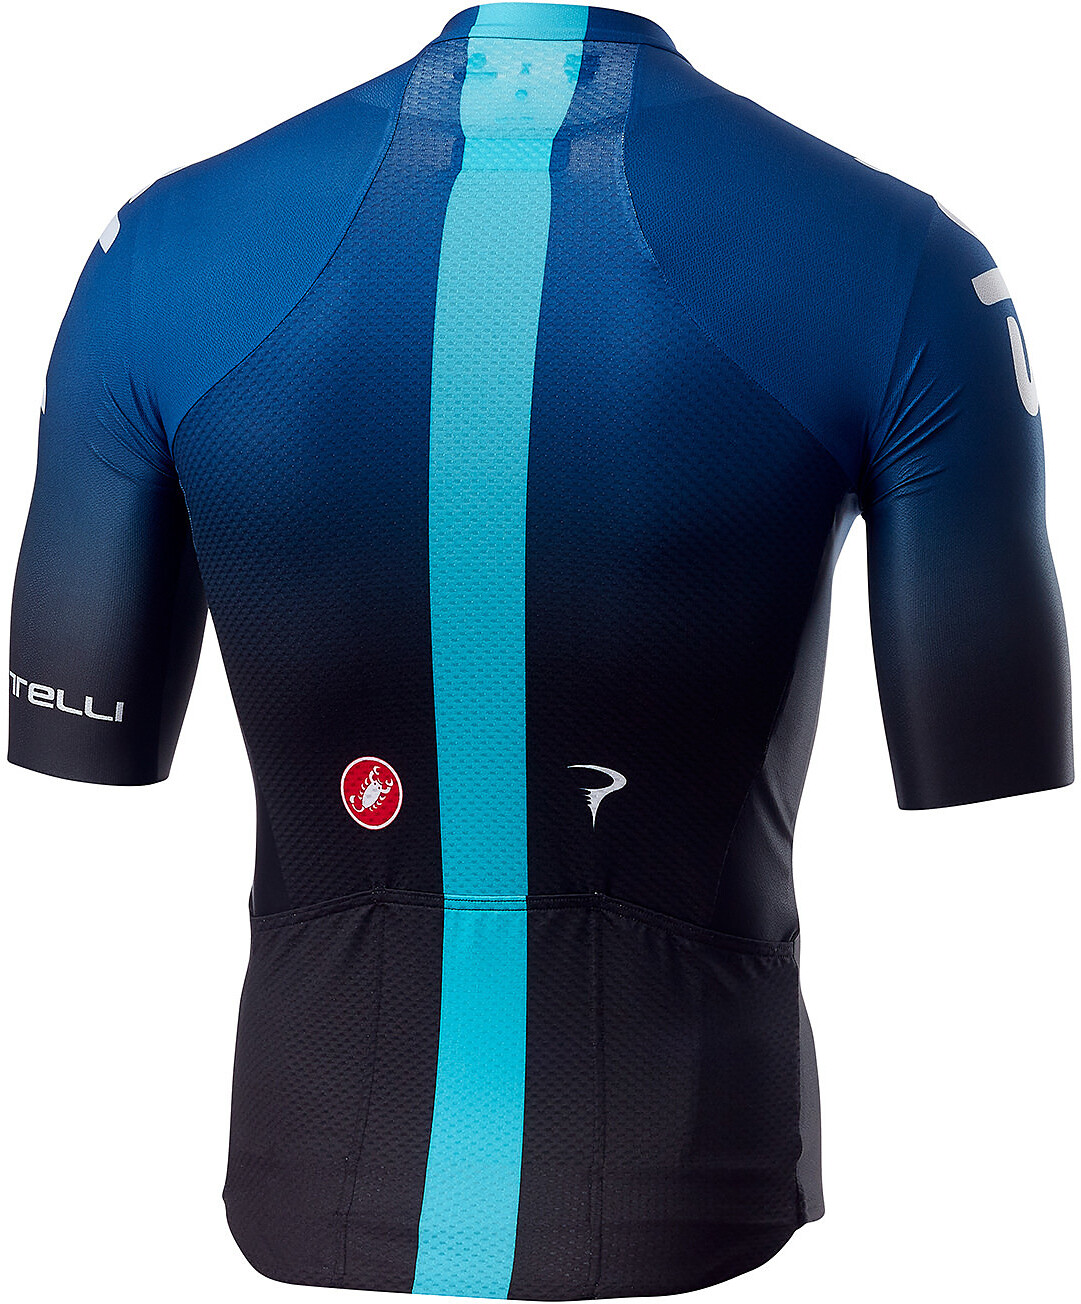 Castelli Team Sky Aero Race 6.0 Bike Jersey Shortsleeve Men blue black 6e7bdc6b9